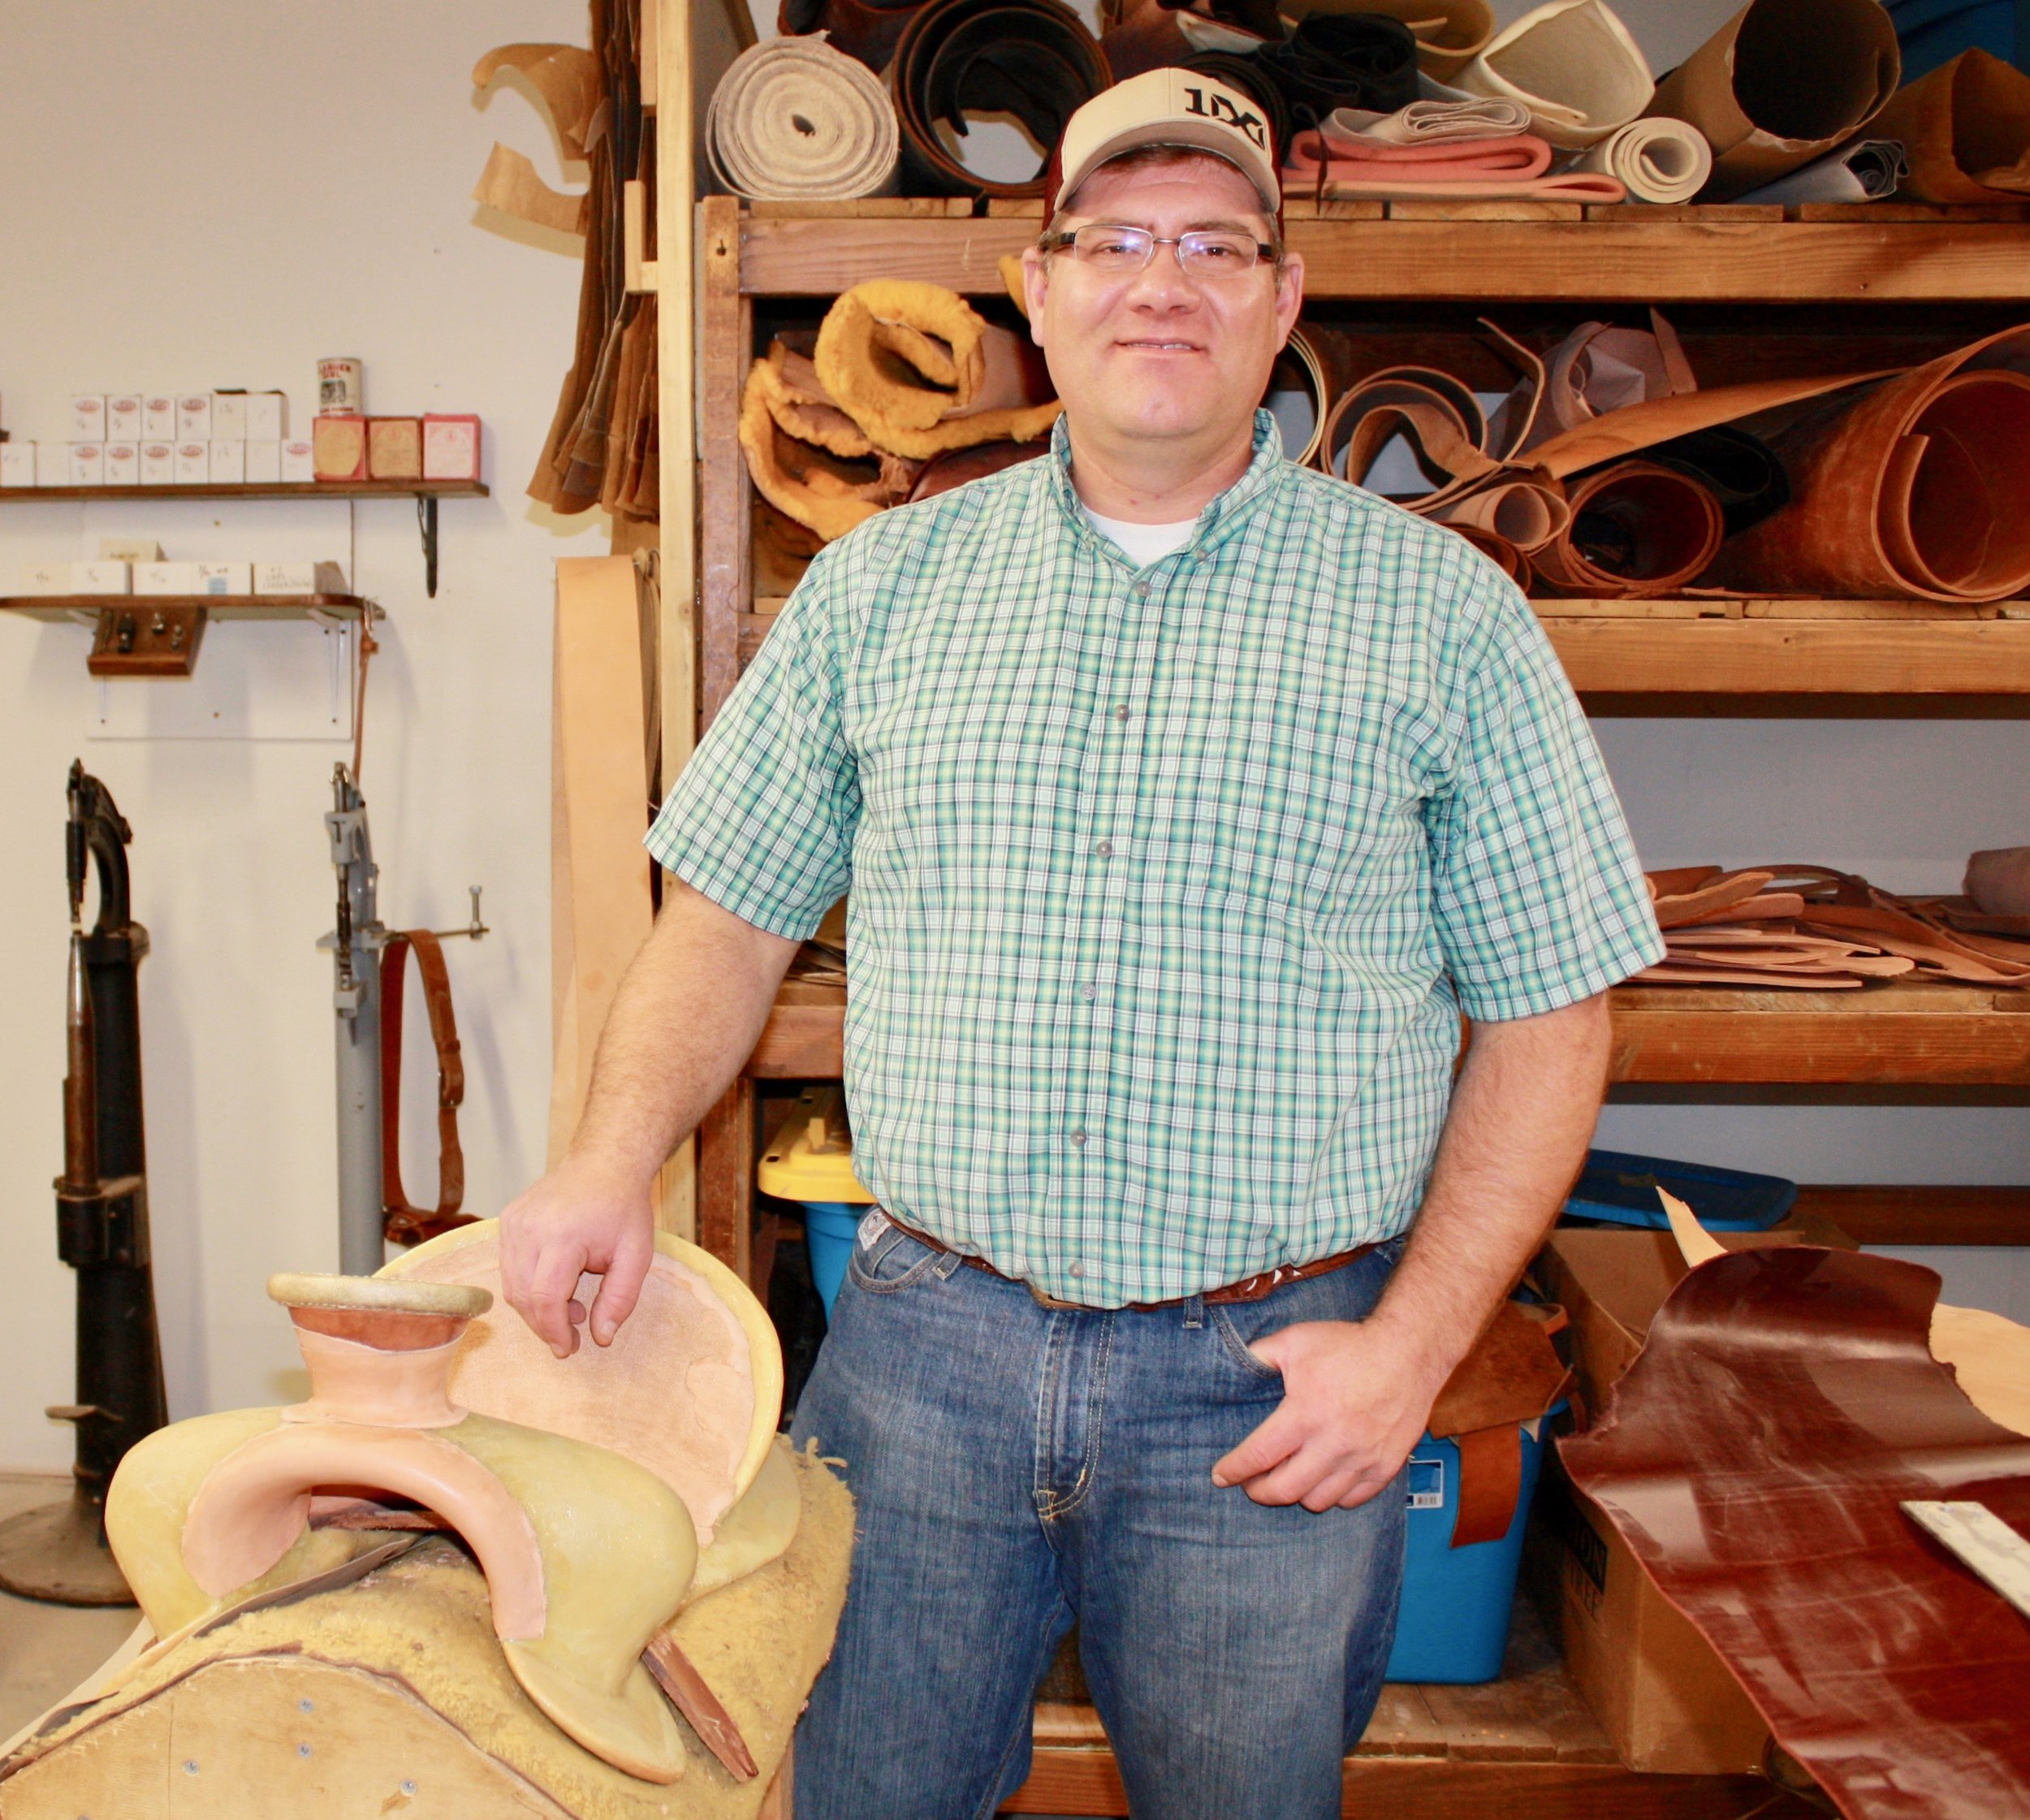 Saddle making apprentice Hans Hansen of Melba plans to use this saddle for team roping and ranch work in Owhyee County.